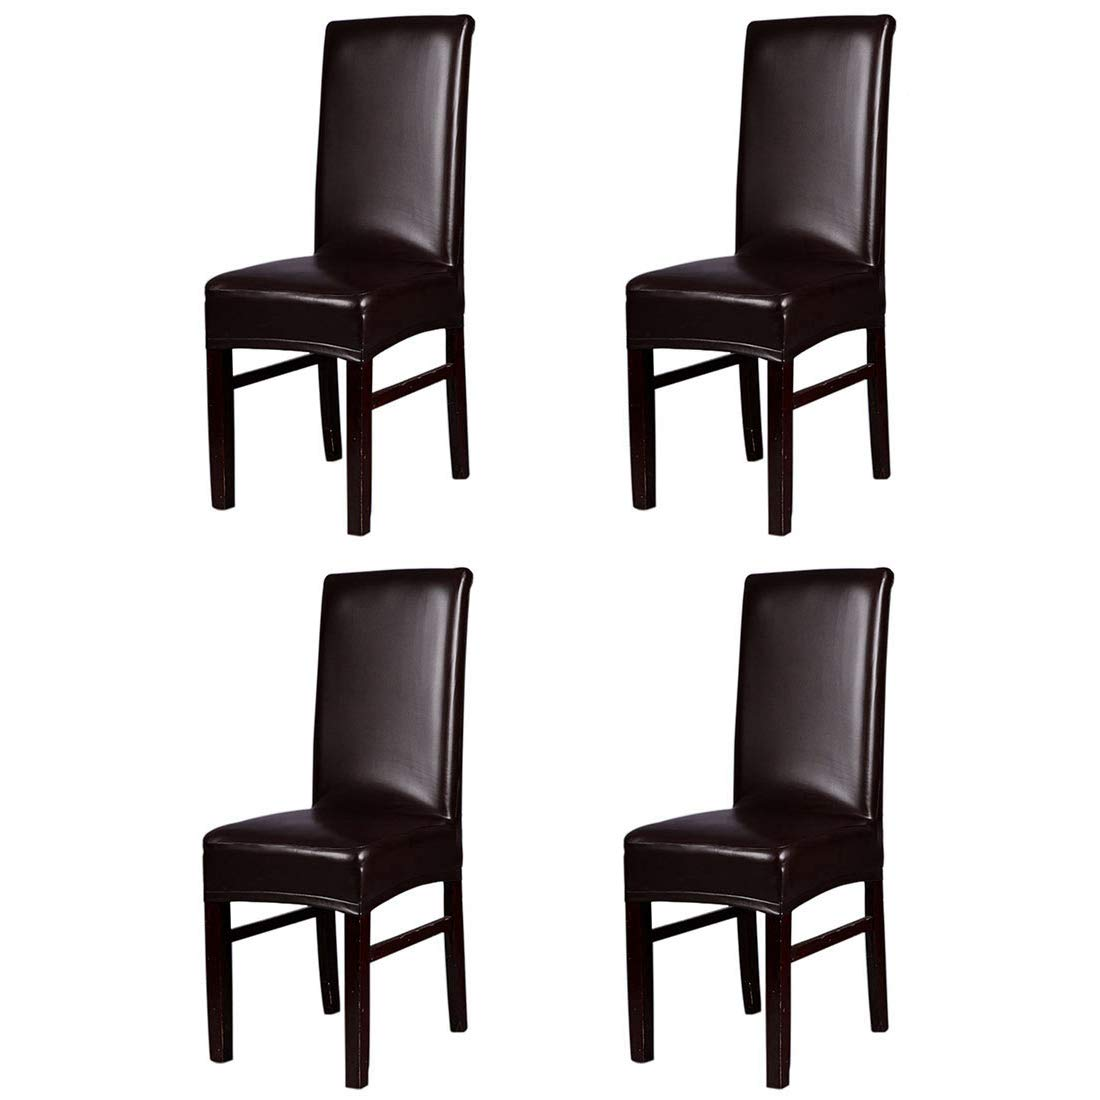 YUENA CARE 4Pack Dining Chair Covers Waterproof Faux Leather Chair Slipcover Washable Romovable Seat Protectors Home Kitchen Party Hotel Brown